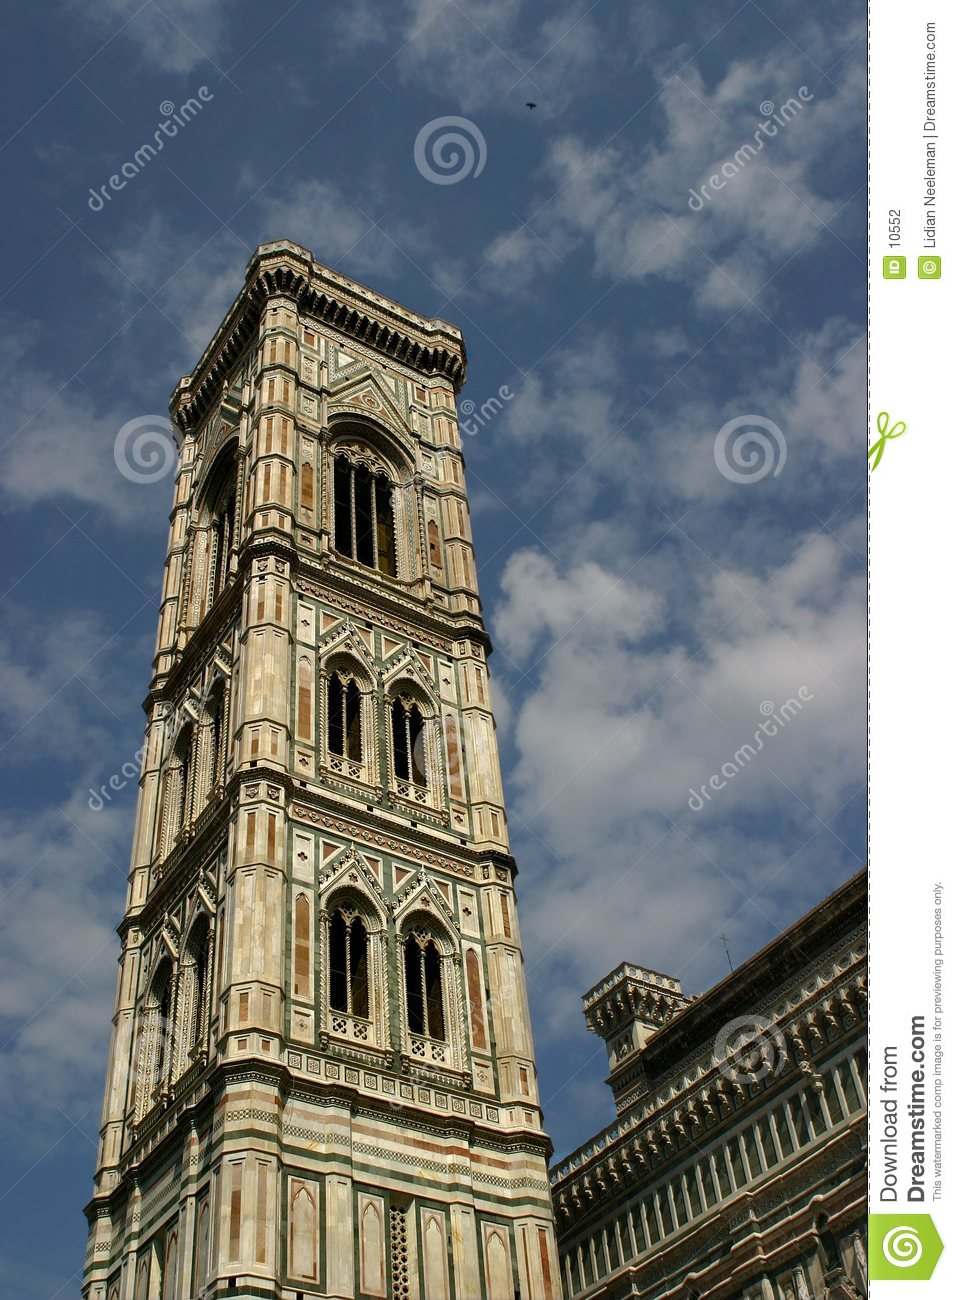 Dome of Florenze